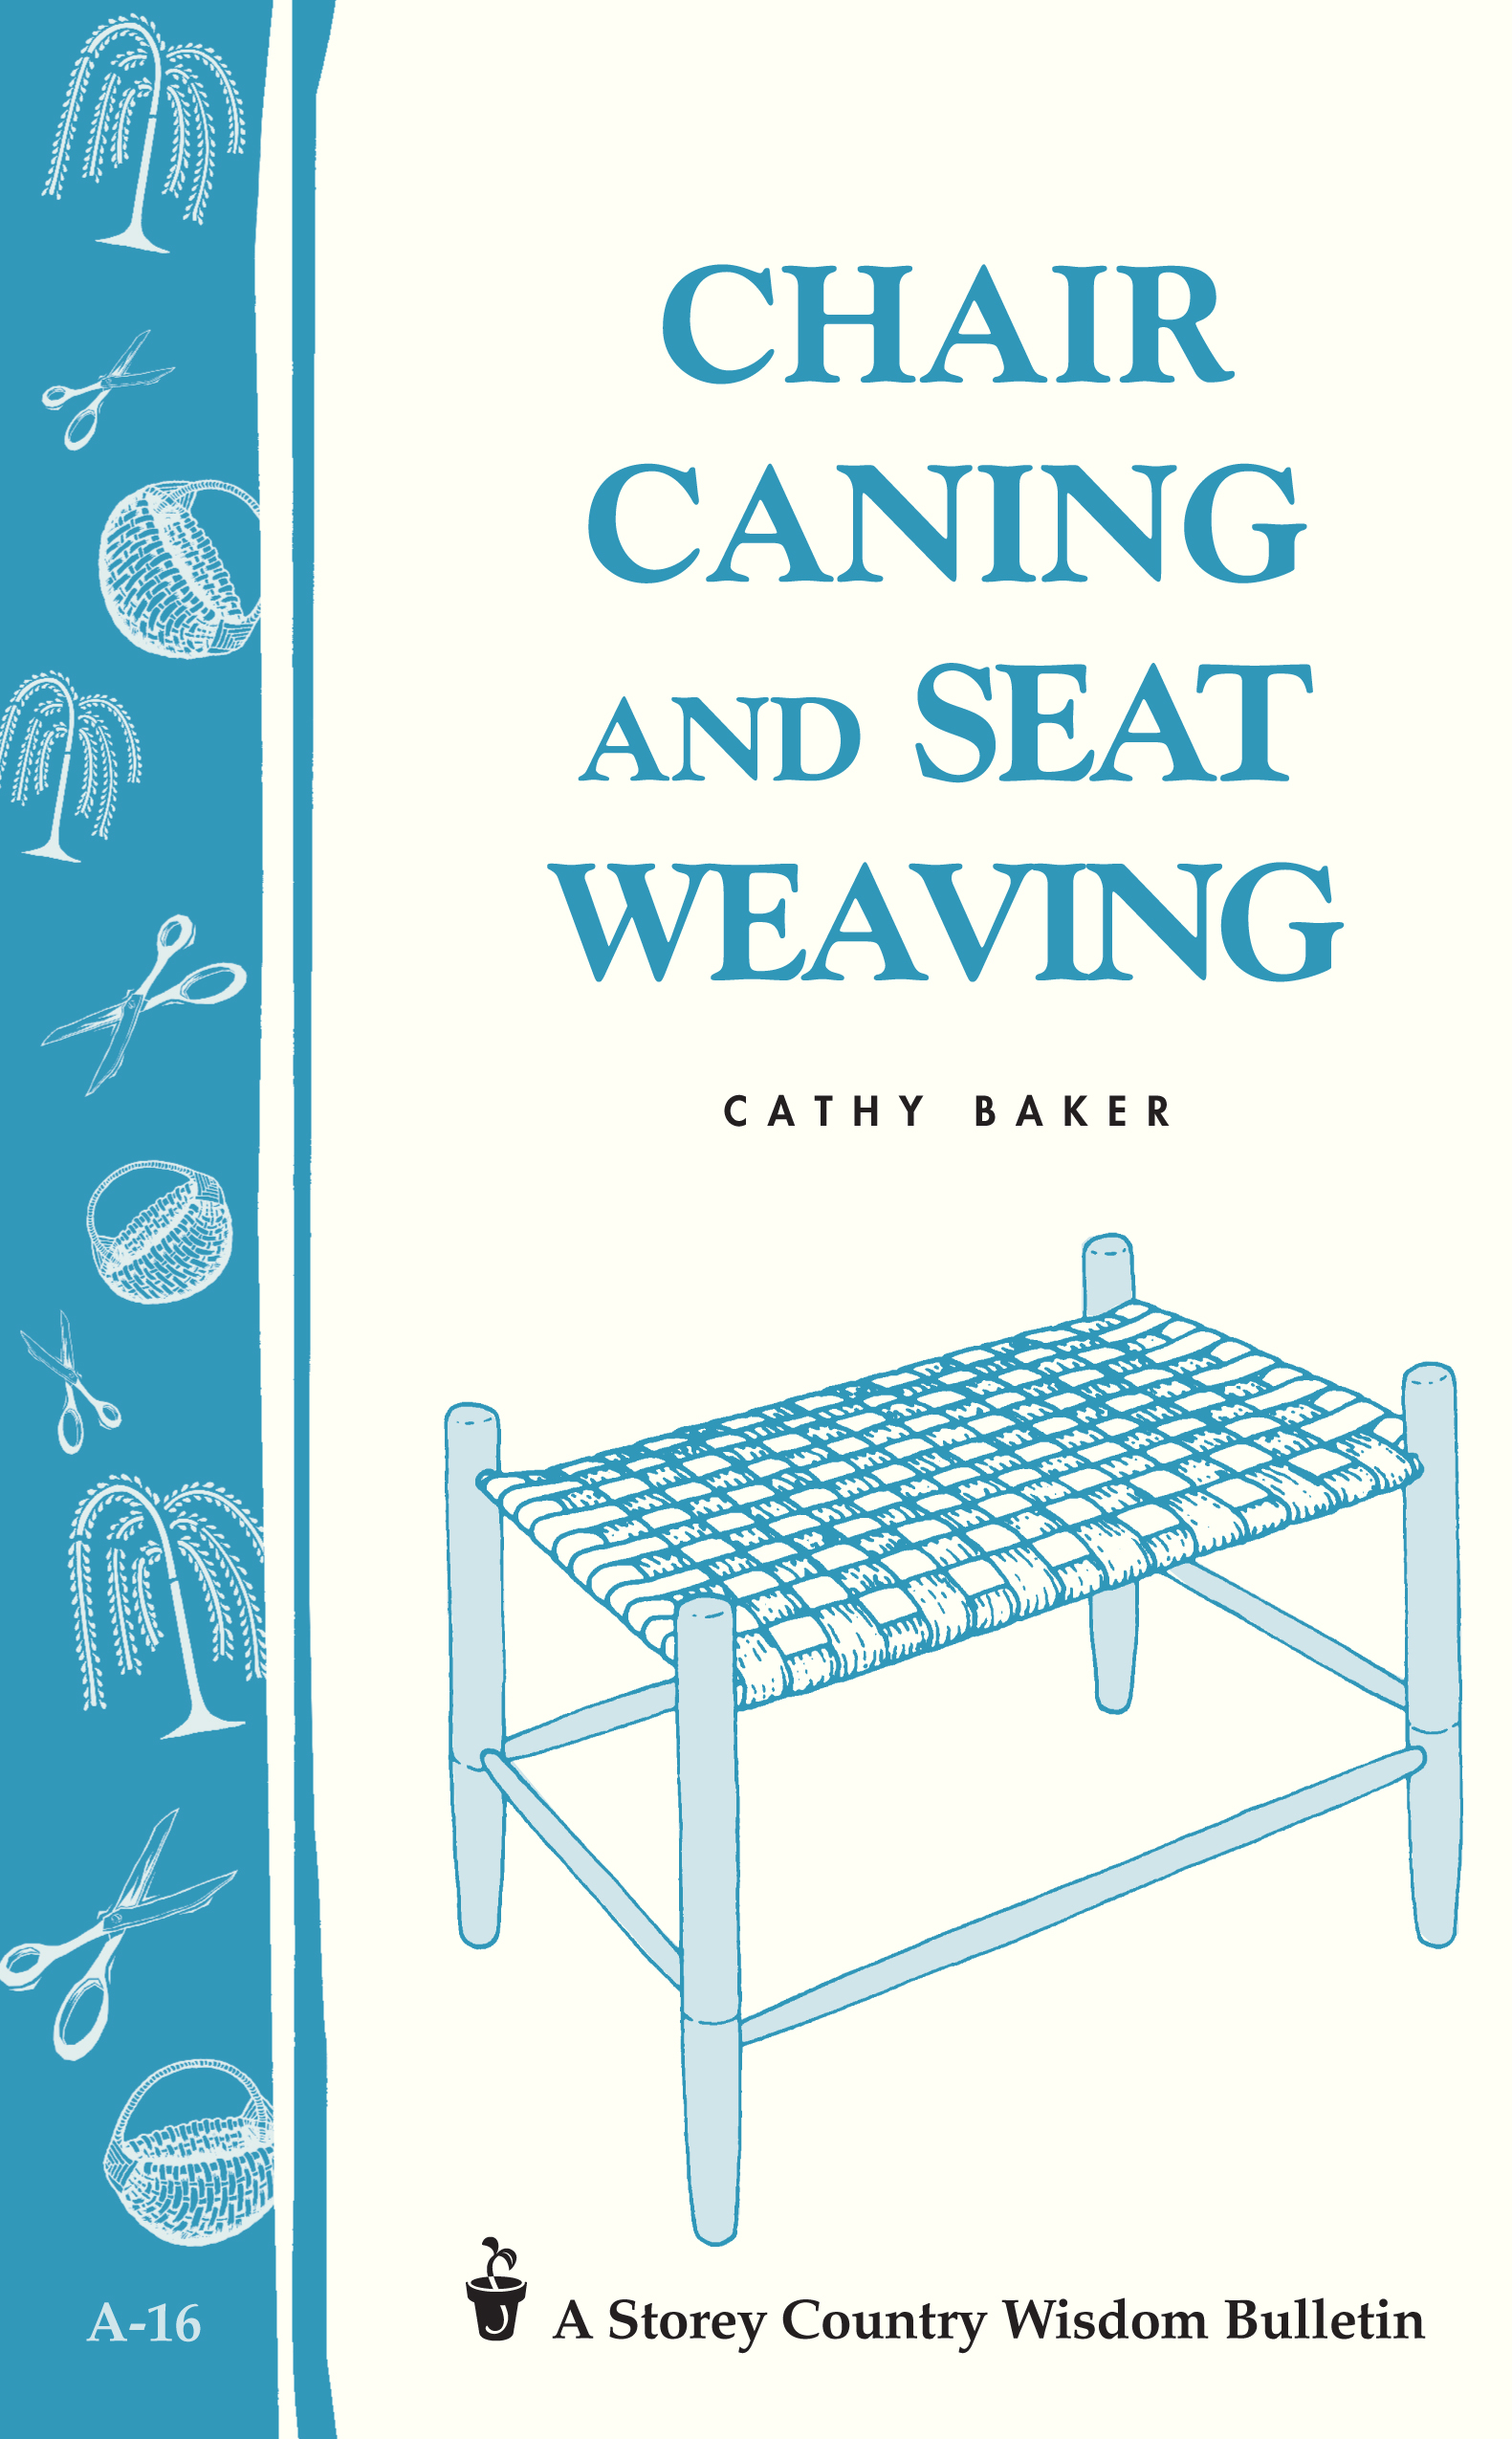 Chair Caning and Seat Weaving Storey Country Wisdom Bulletin A-16 - Cathy Baker